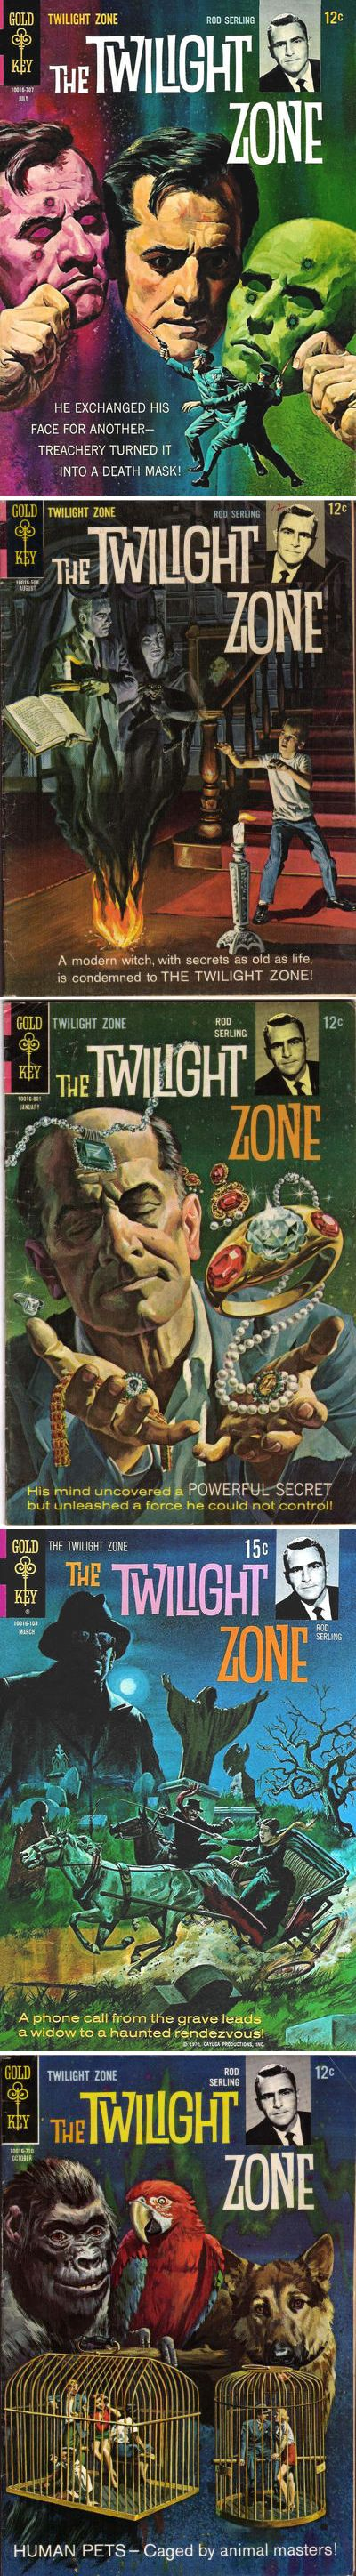 Best Book Cover Zone : Best twilight zone the movie